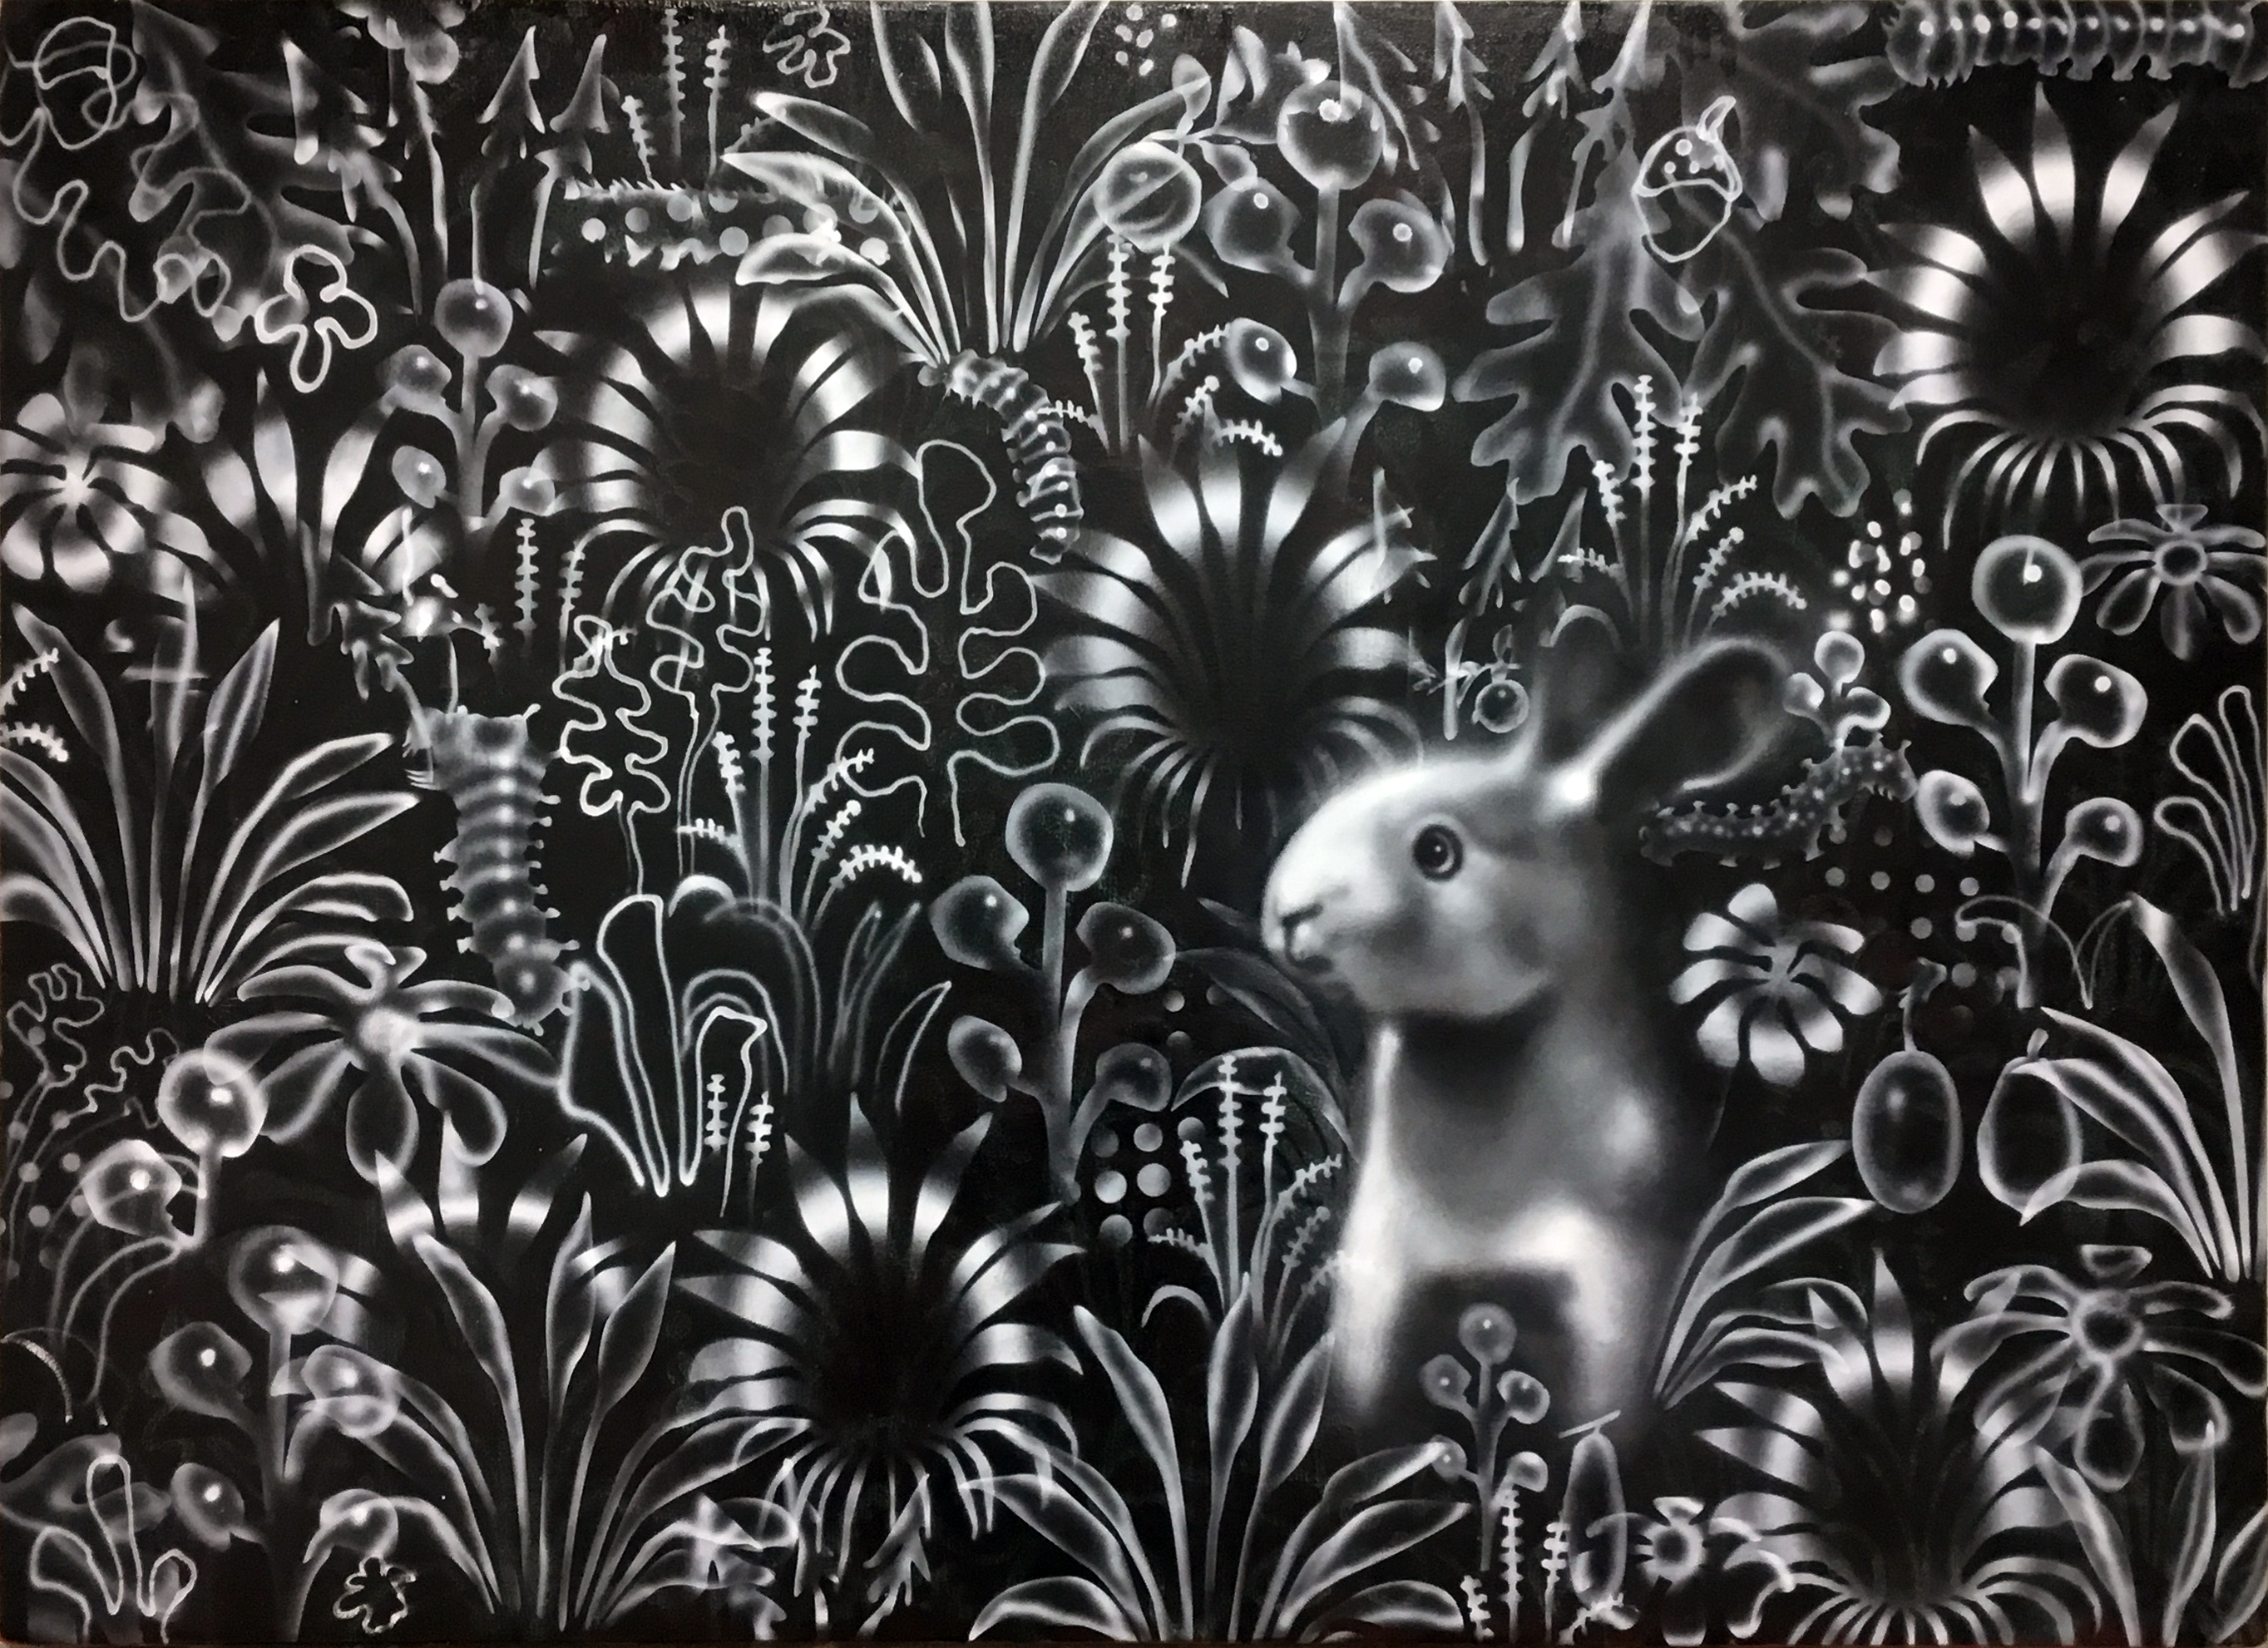 Black Meadow with White Rabbit, 2018